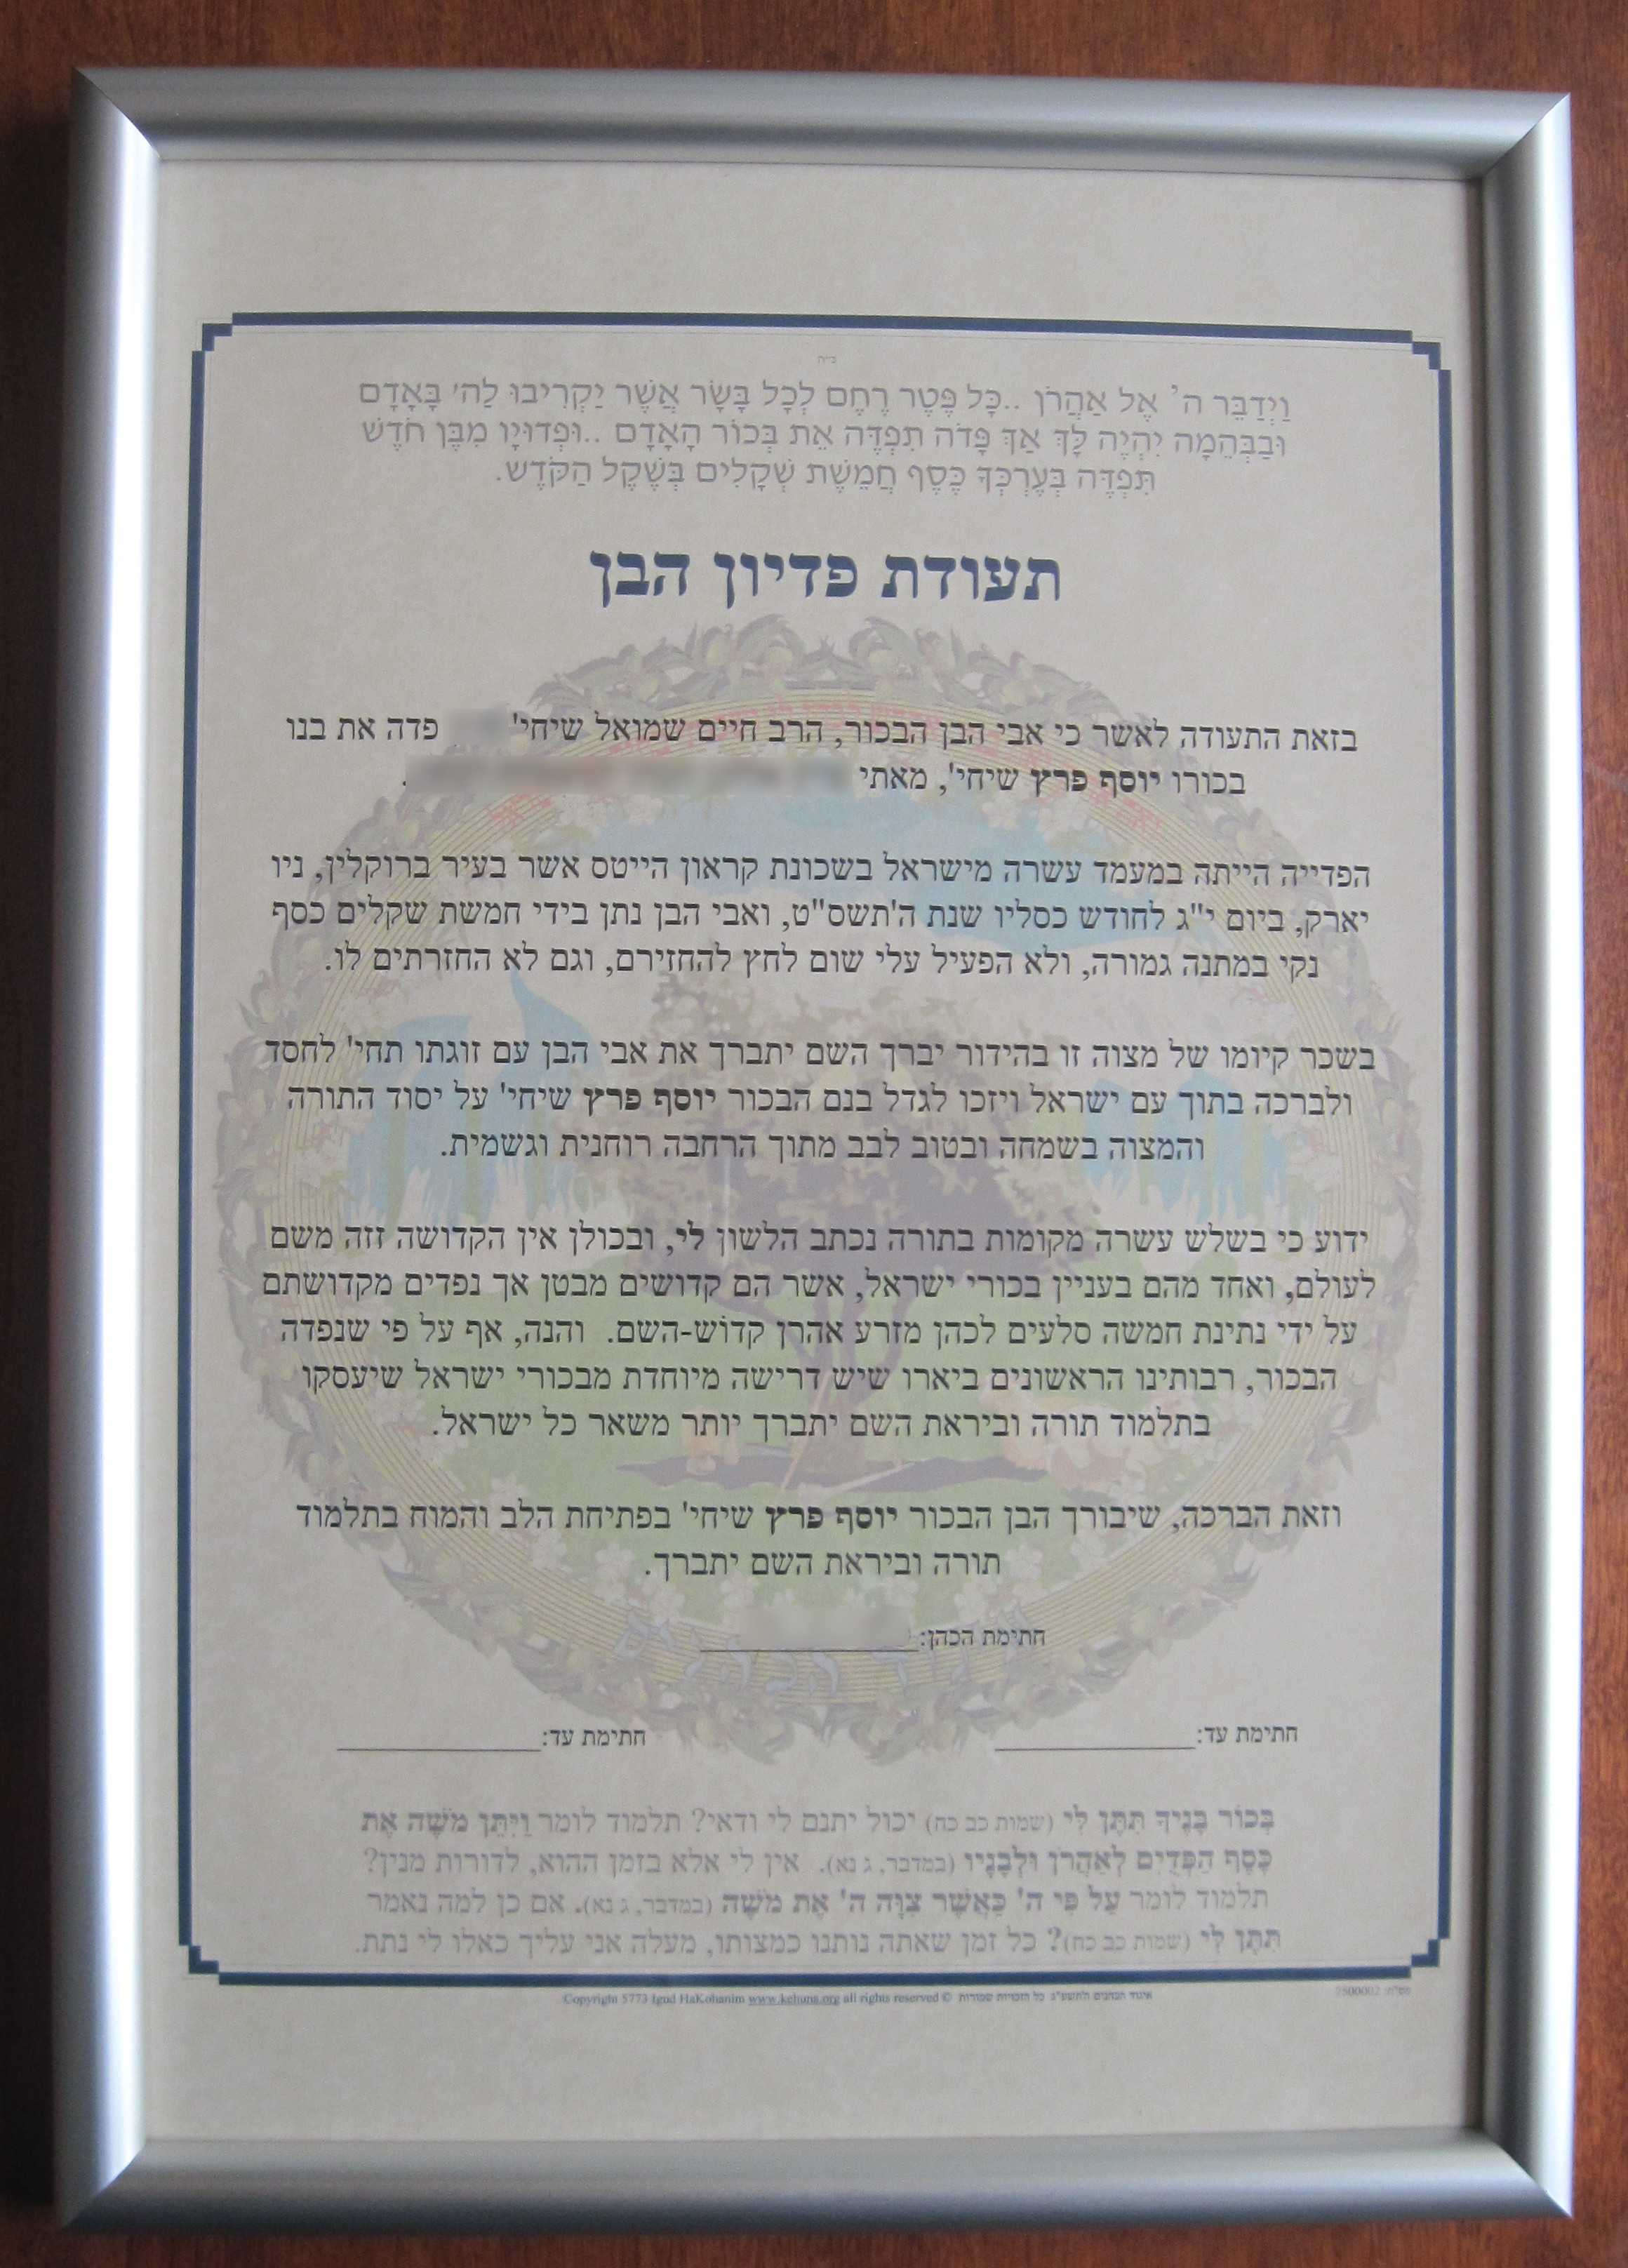 Our Pidyon certificate provides an eye-striking eternal message to the bchor of his responsibility to talmud torah and yirat shamayim.